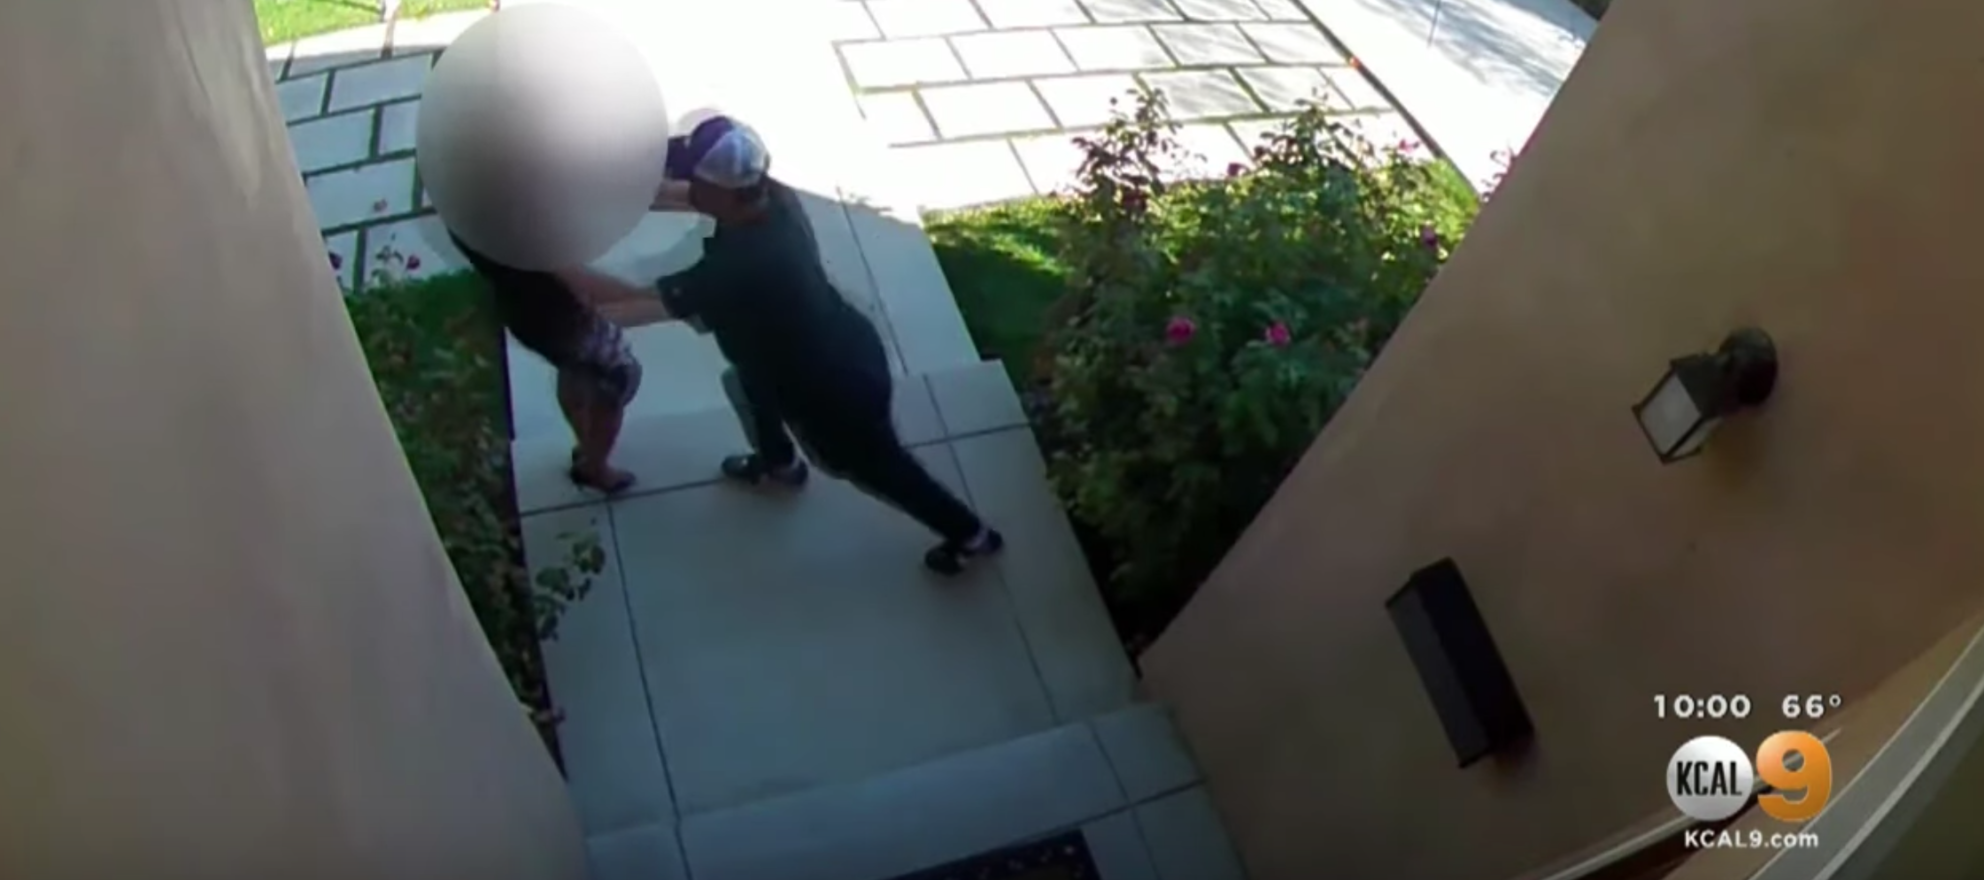 Surveillance footage shows agent viciously attacked at open house